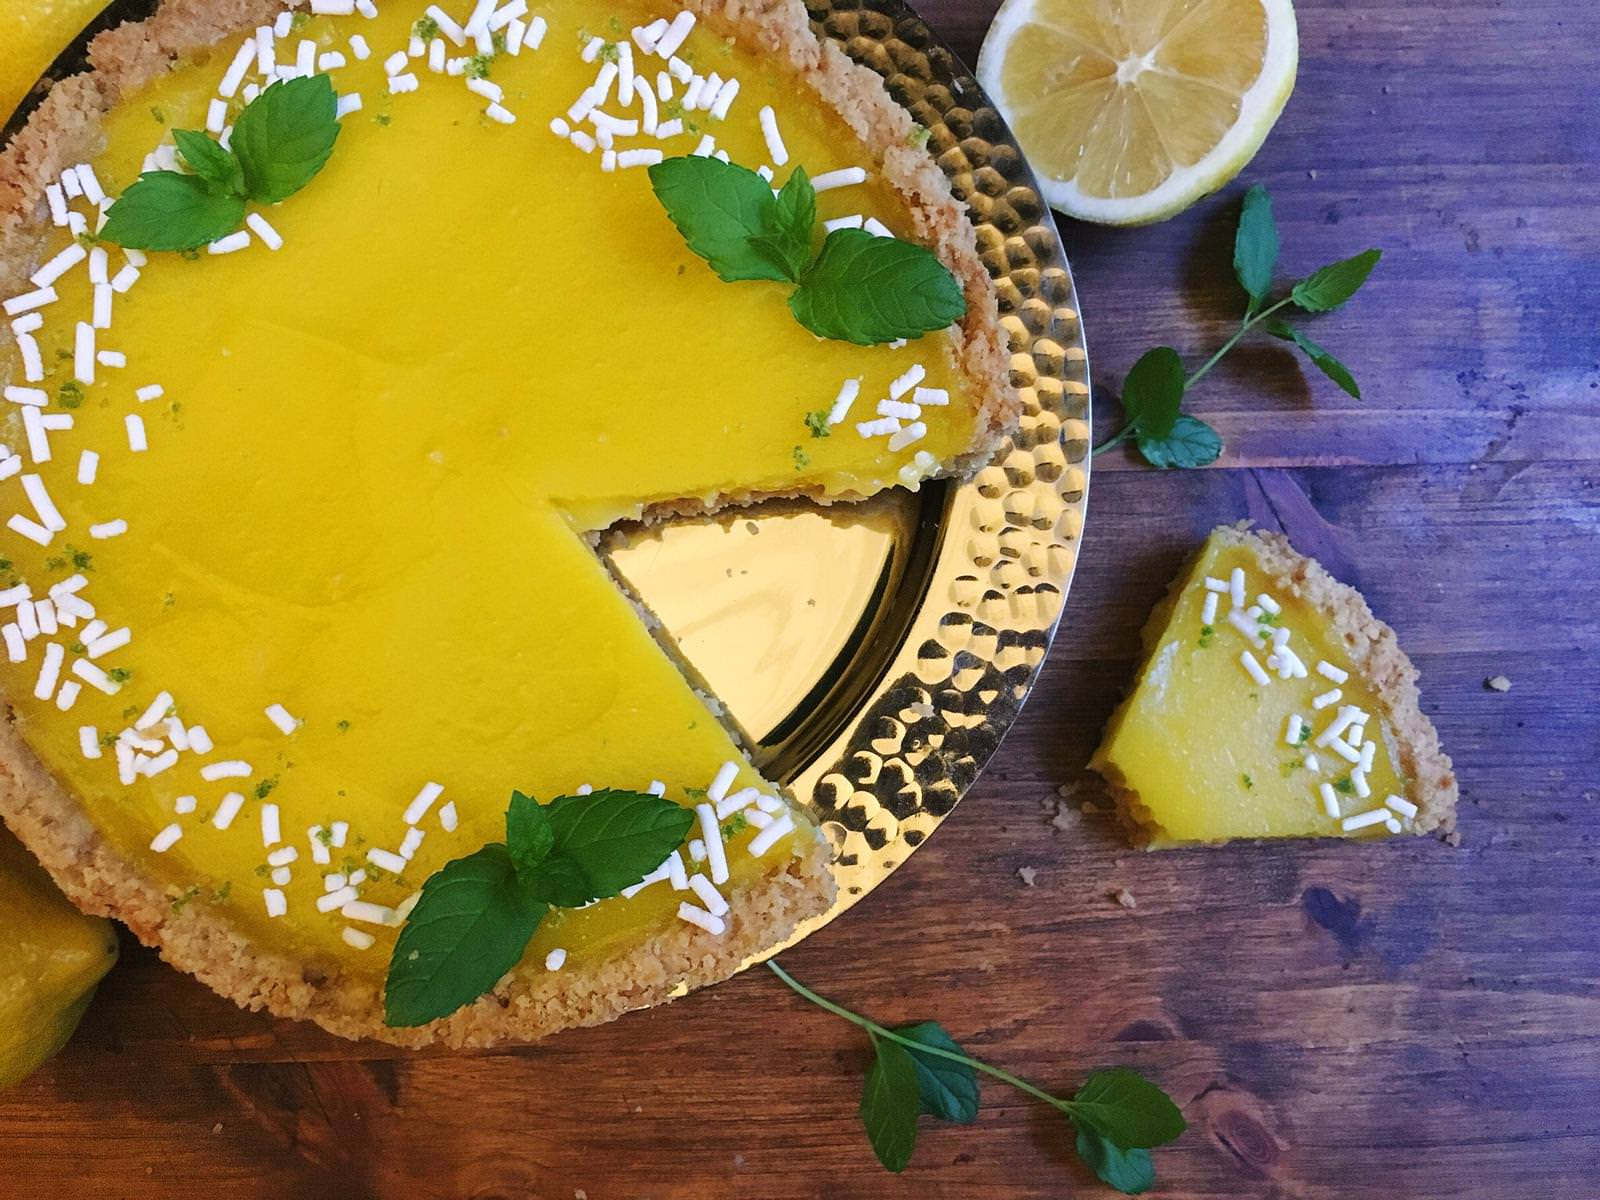 This dairy-free lemon tart tastes as rich and indulgent as it's butter-filled counterpart. The short crust and lemon curd sub olive oil for butter.